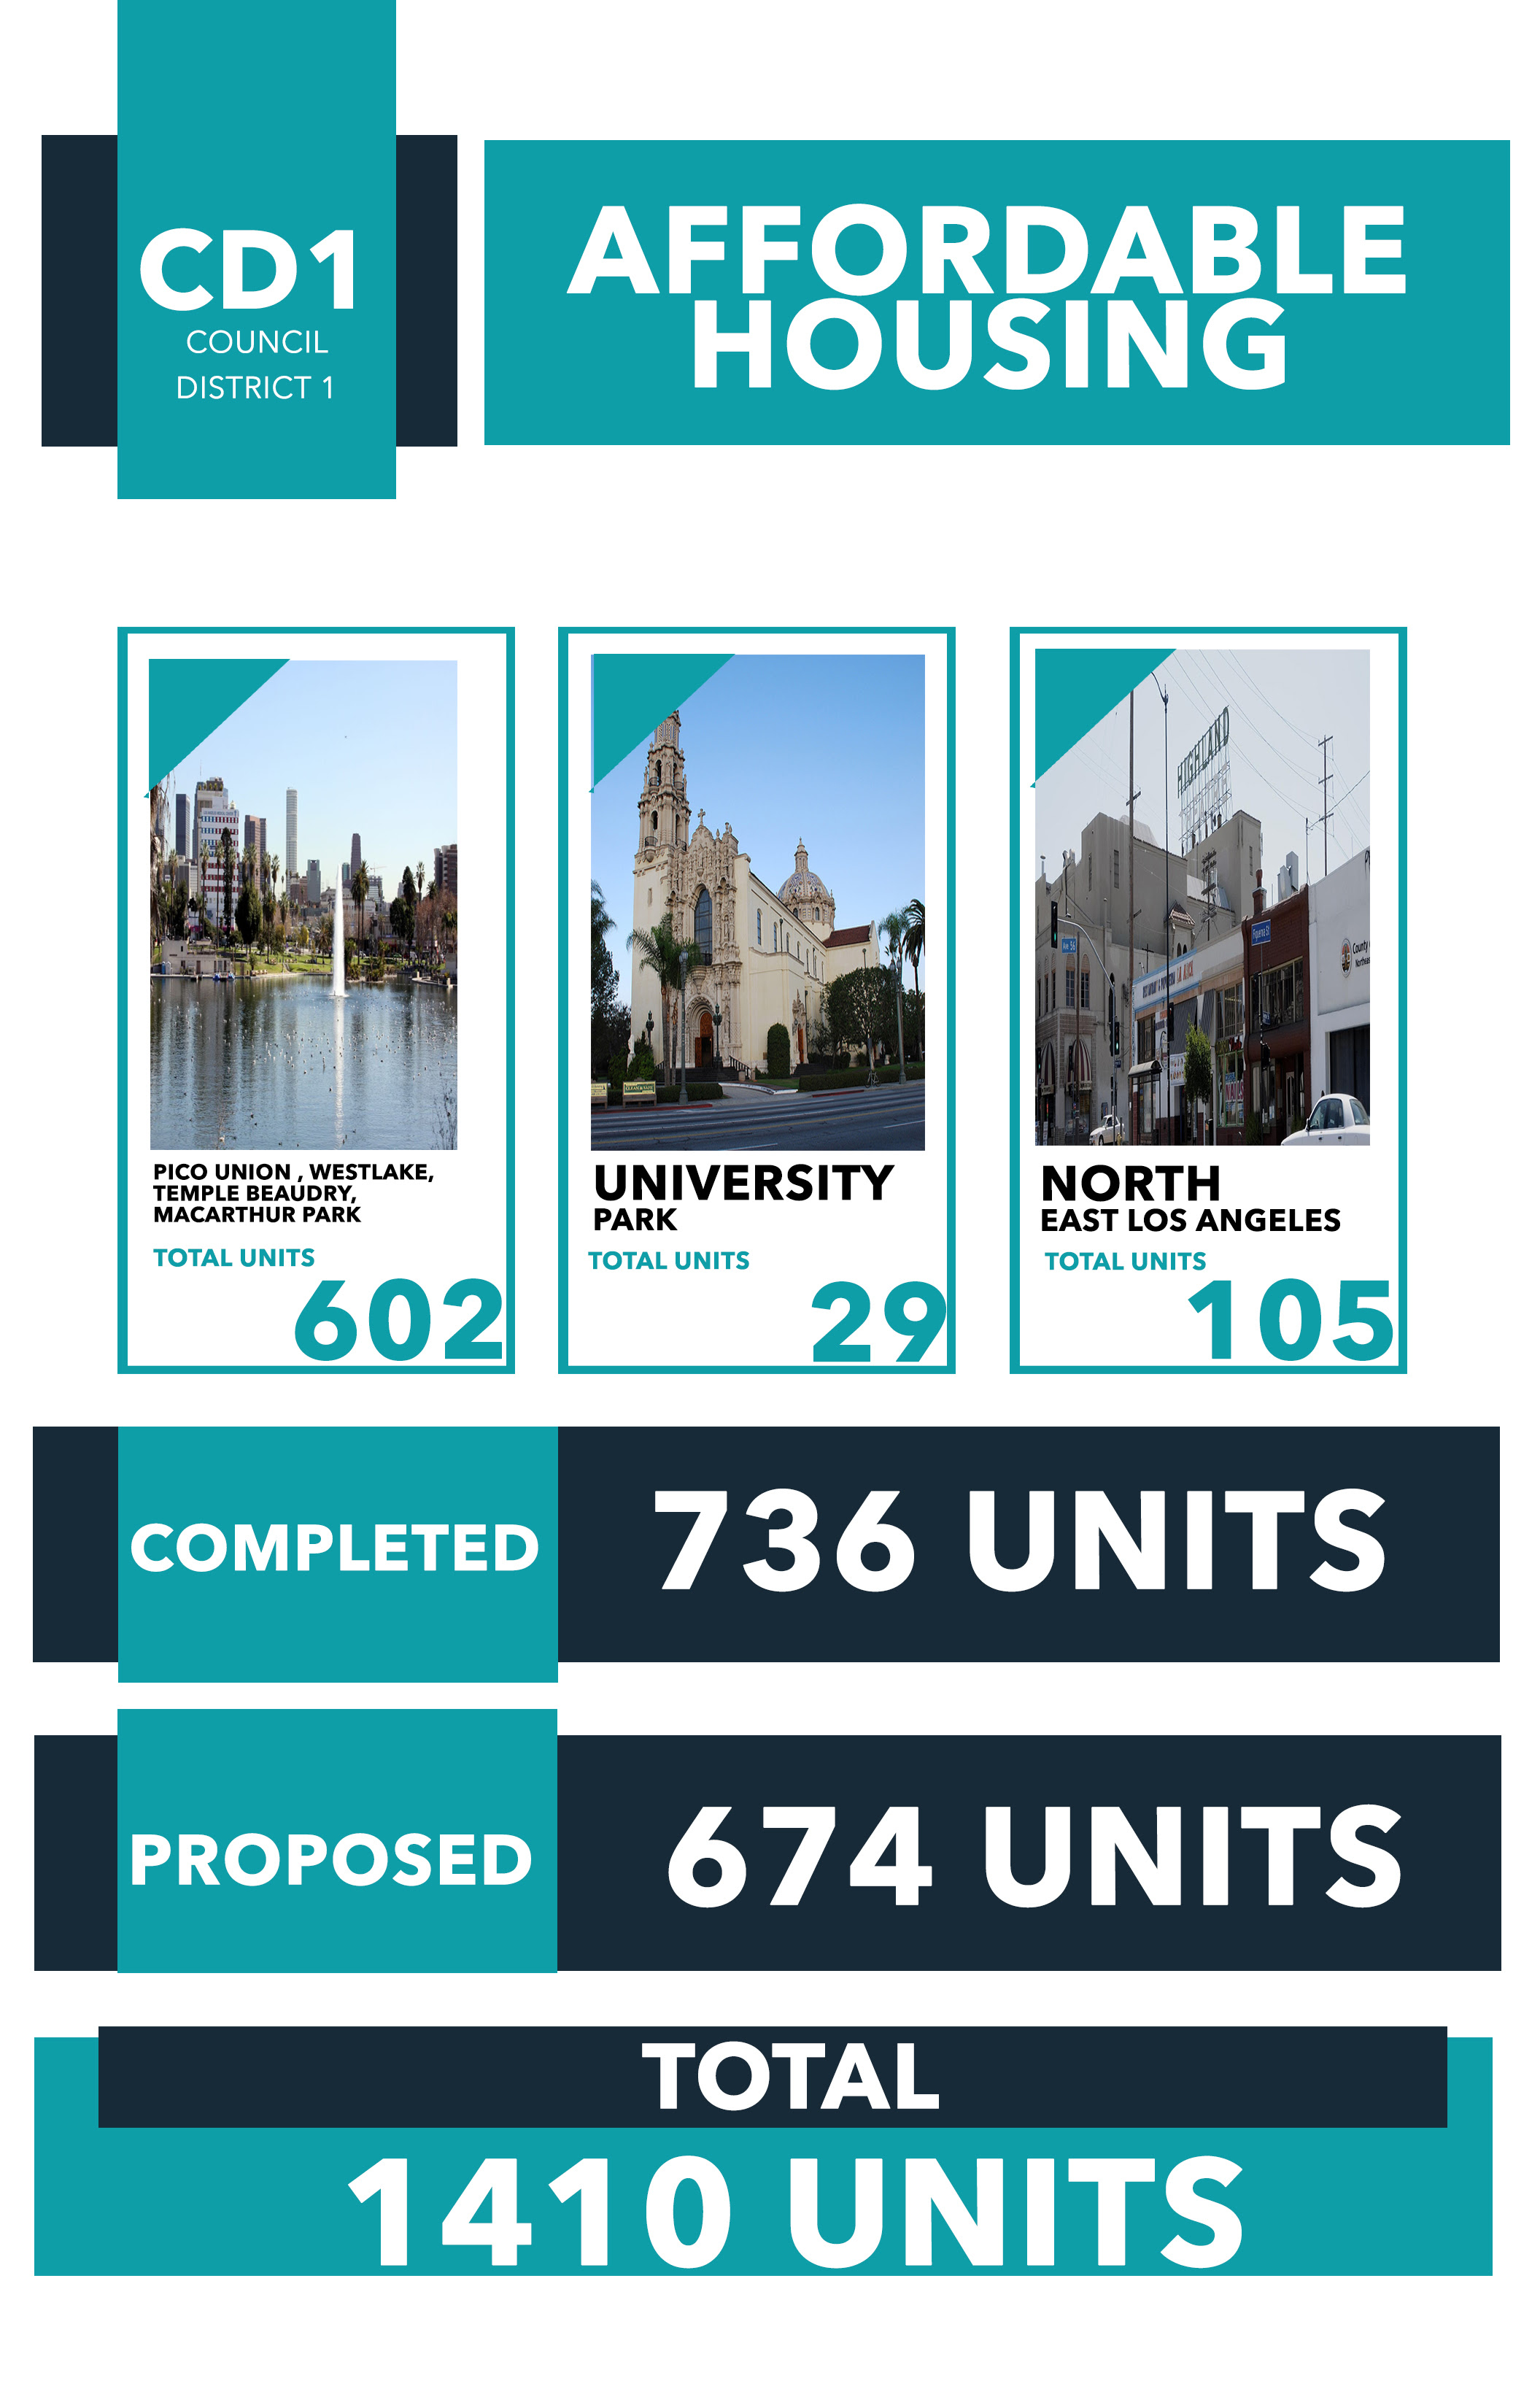 Affordable_Housing_in_CD1__Infographic.jpg